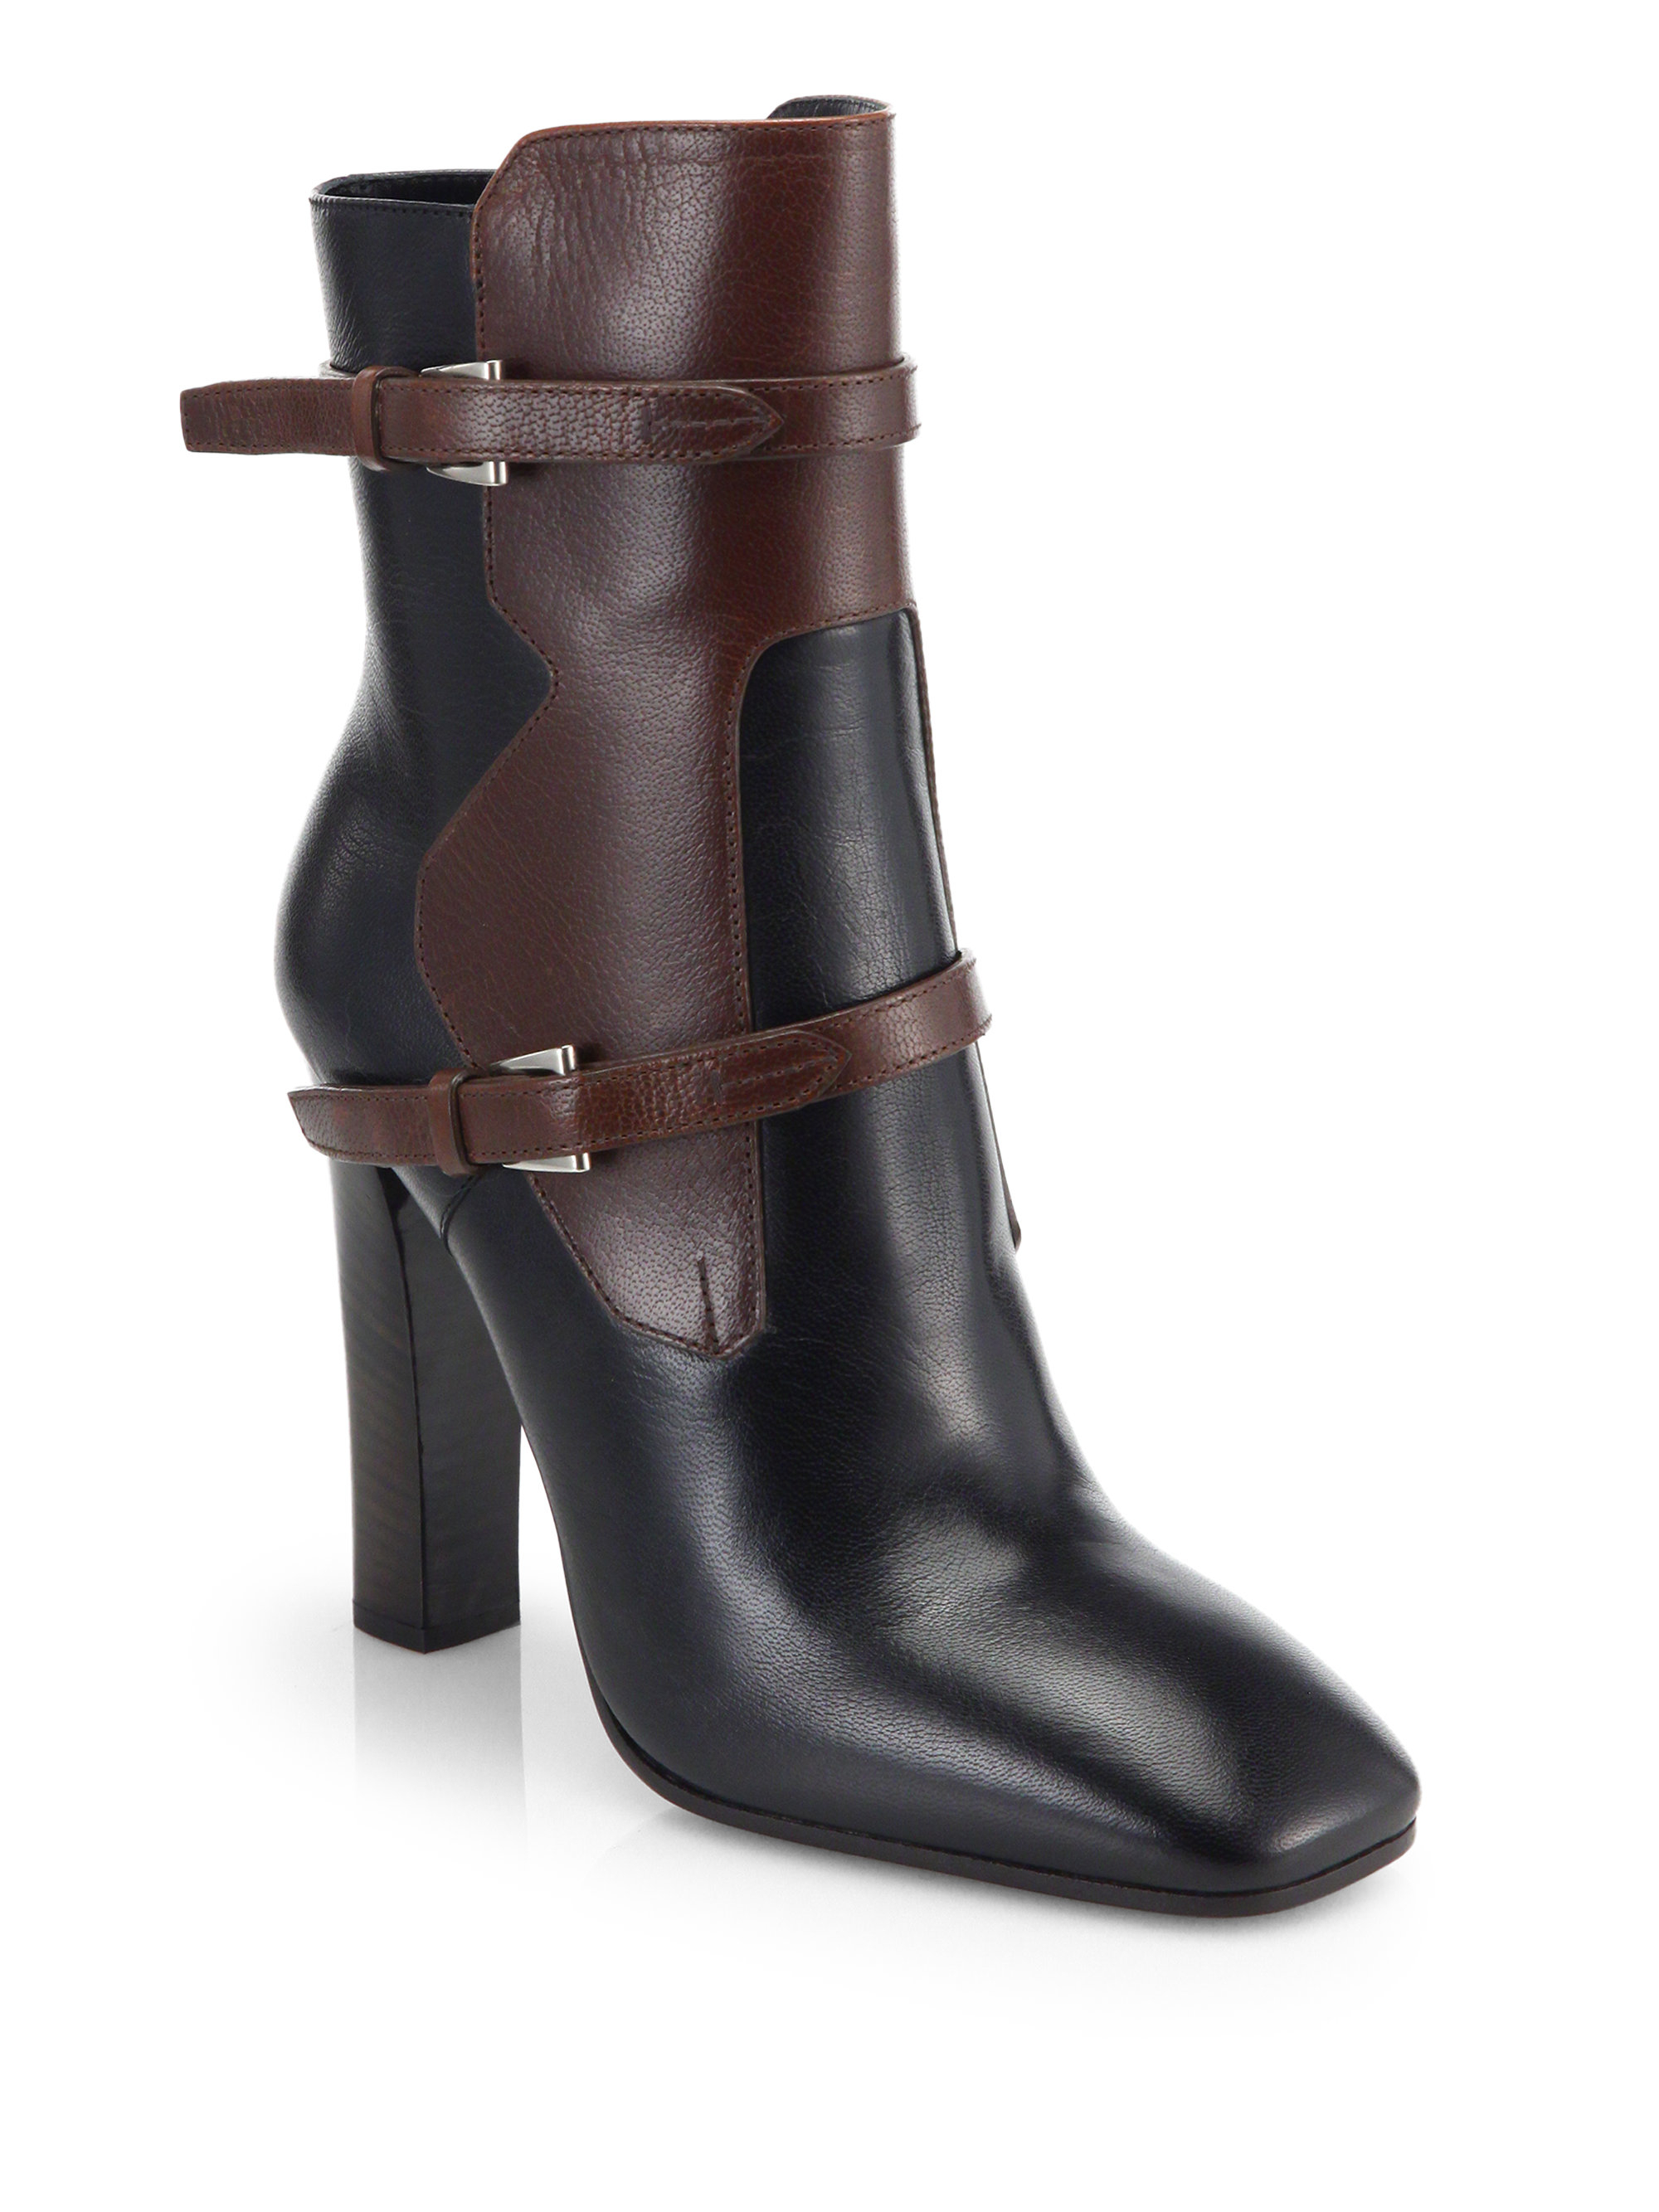 Prada Two-Tone Leather Ankle Boots in Brown | Lyst